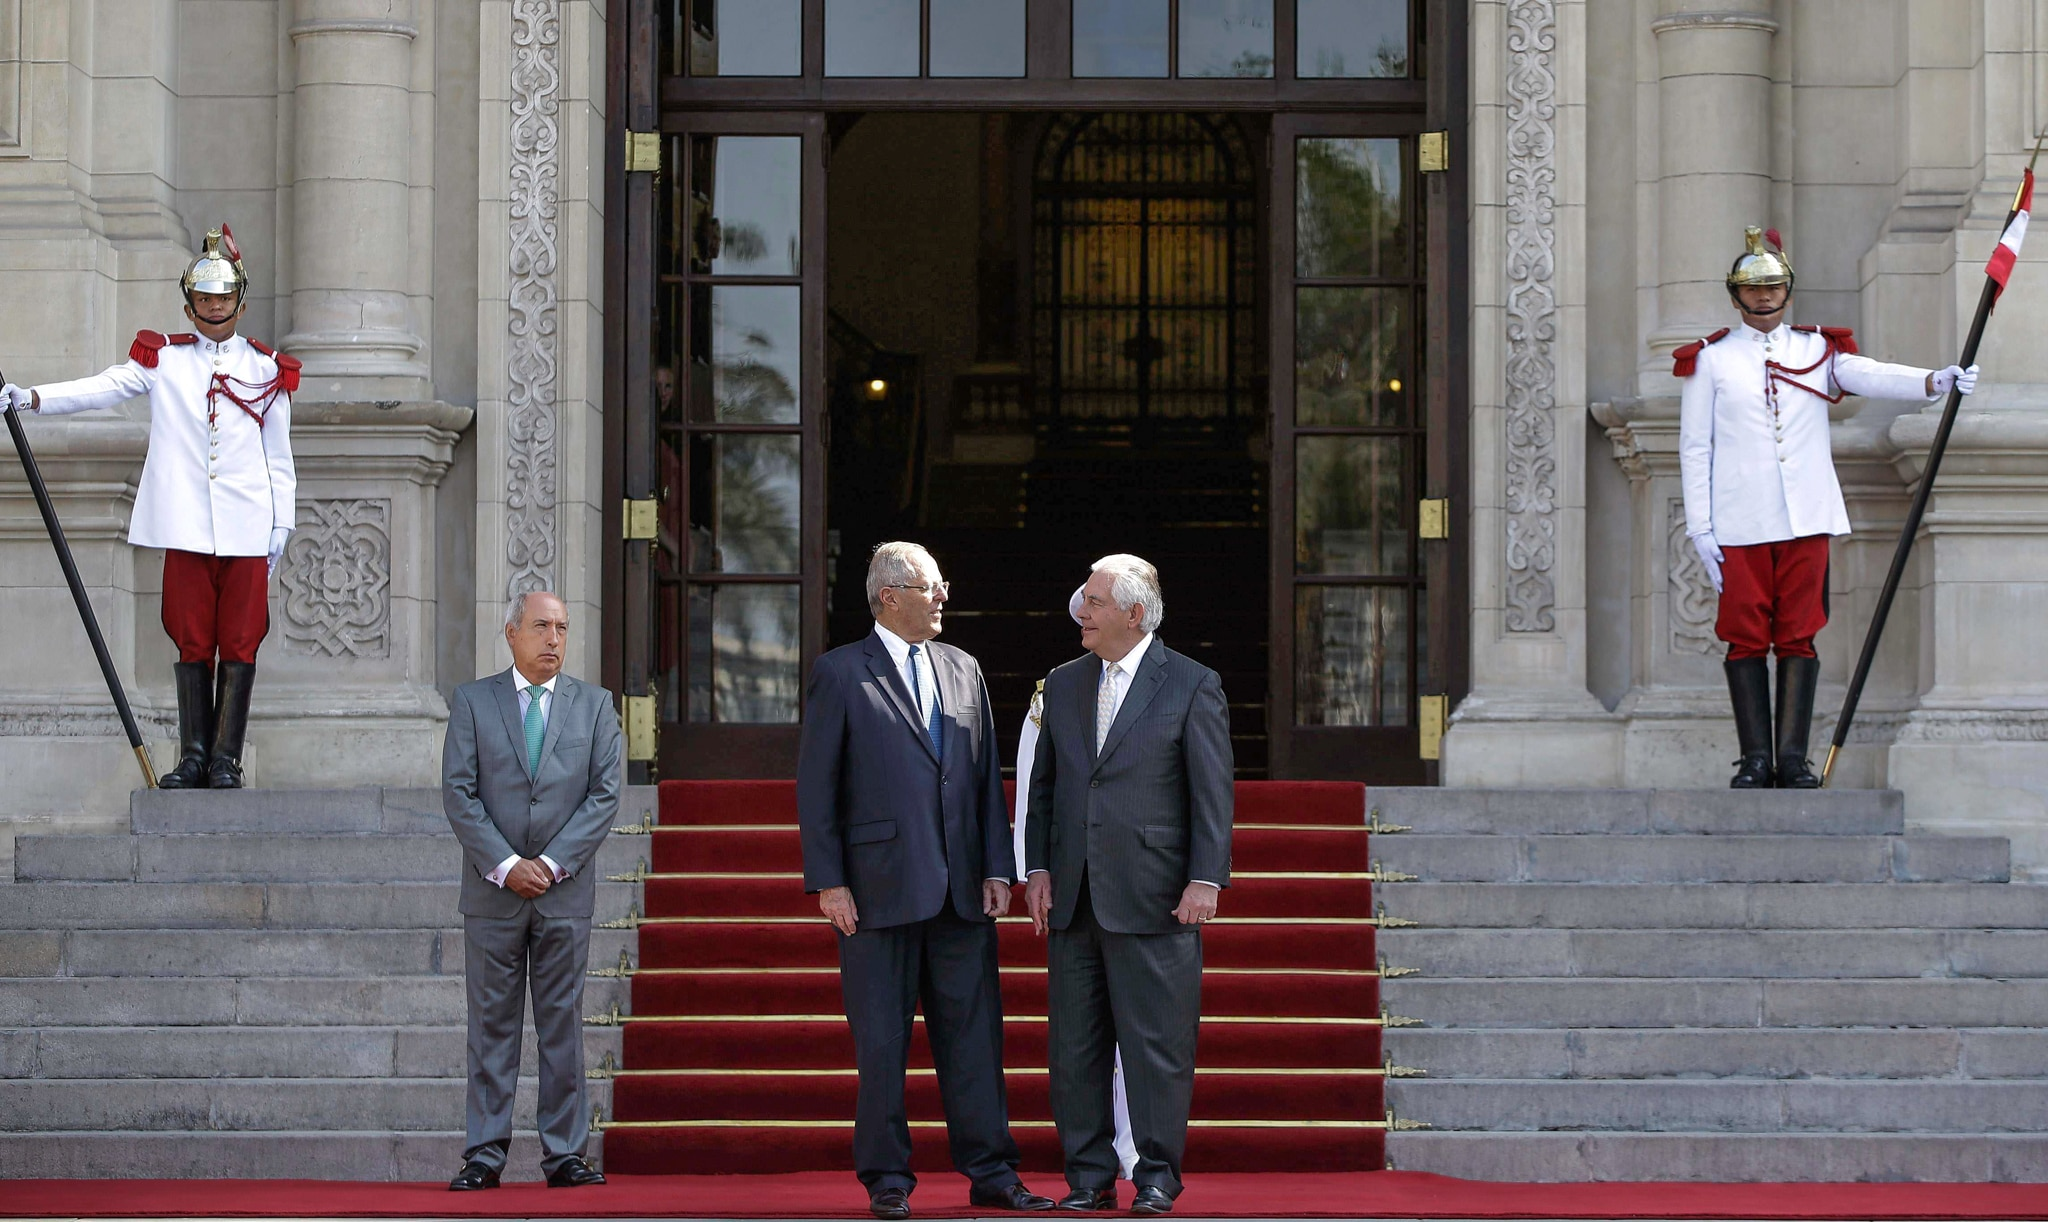 Rex Tillerson and Pedro Pablo Kuczynski standing by steps in front of building guarded by two men (© Martin Mejia/AP Images)